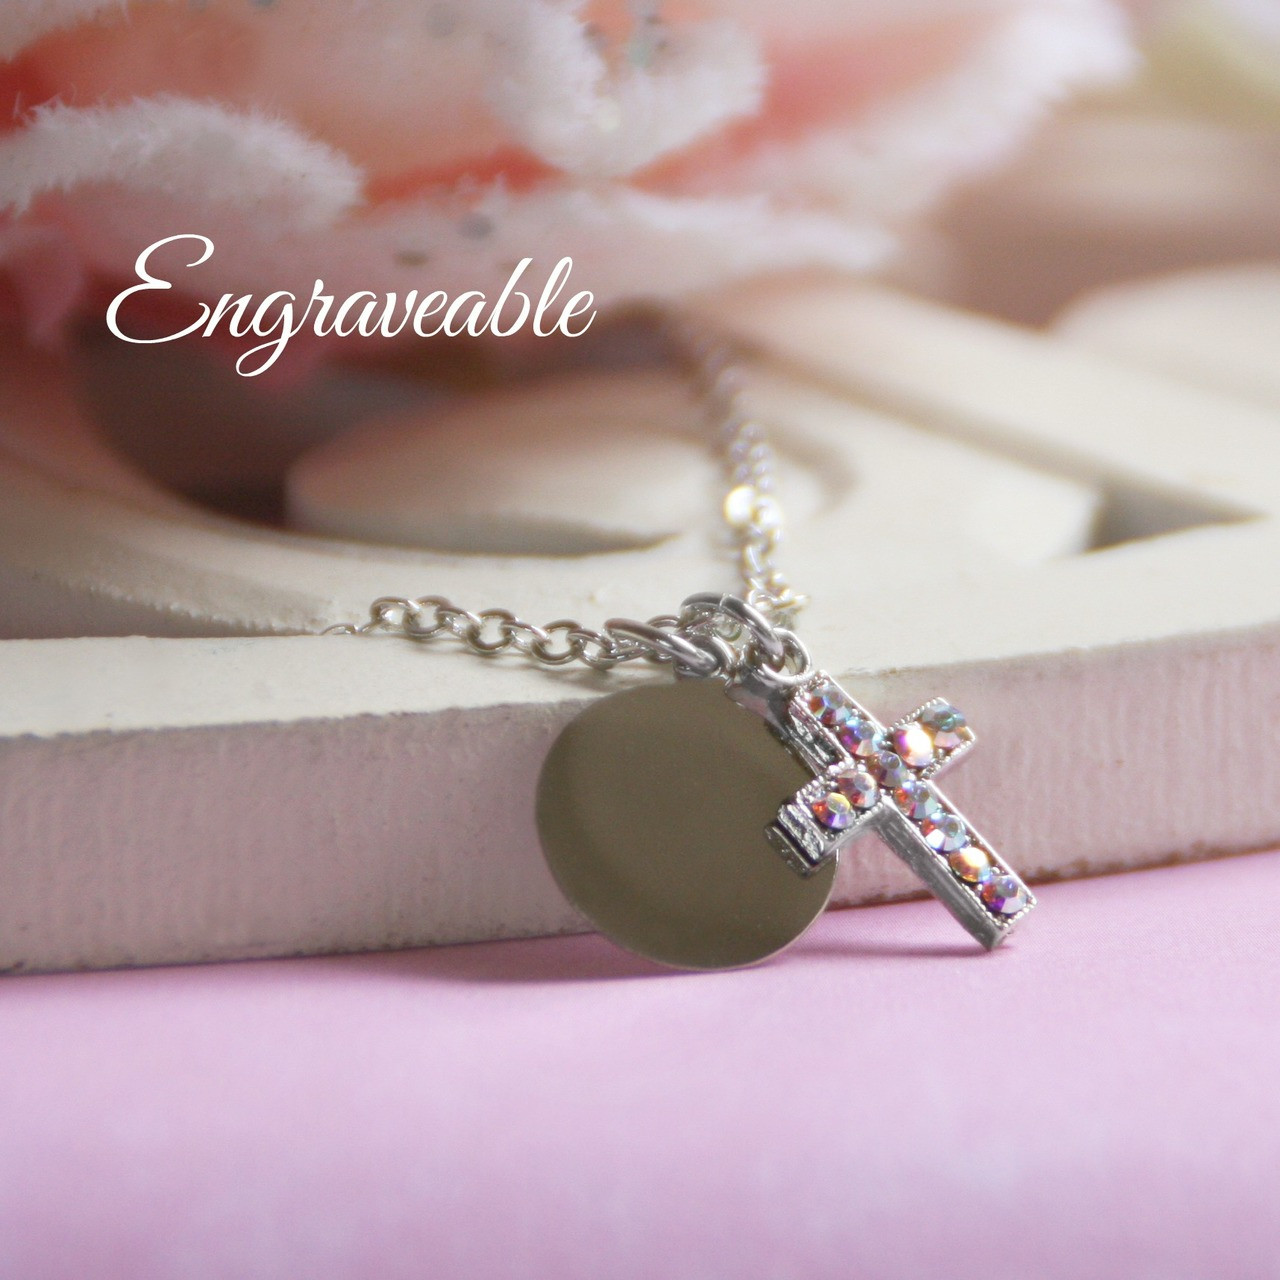 EG-5  Engraveable Stainless Disk and Crystal AB Cross Necklace